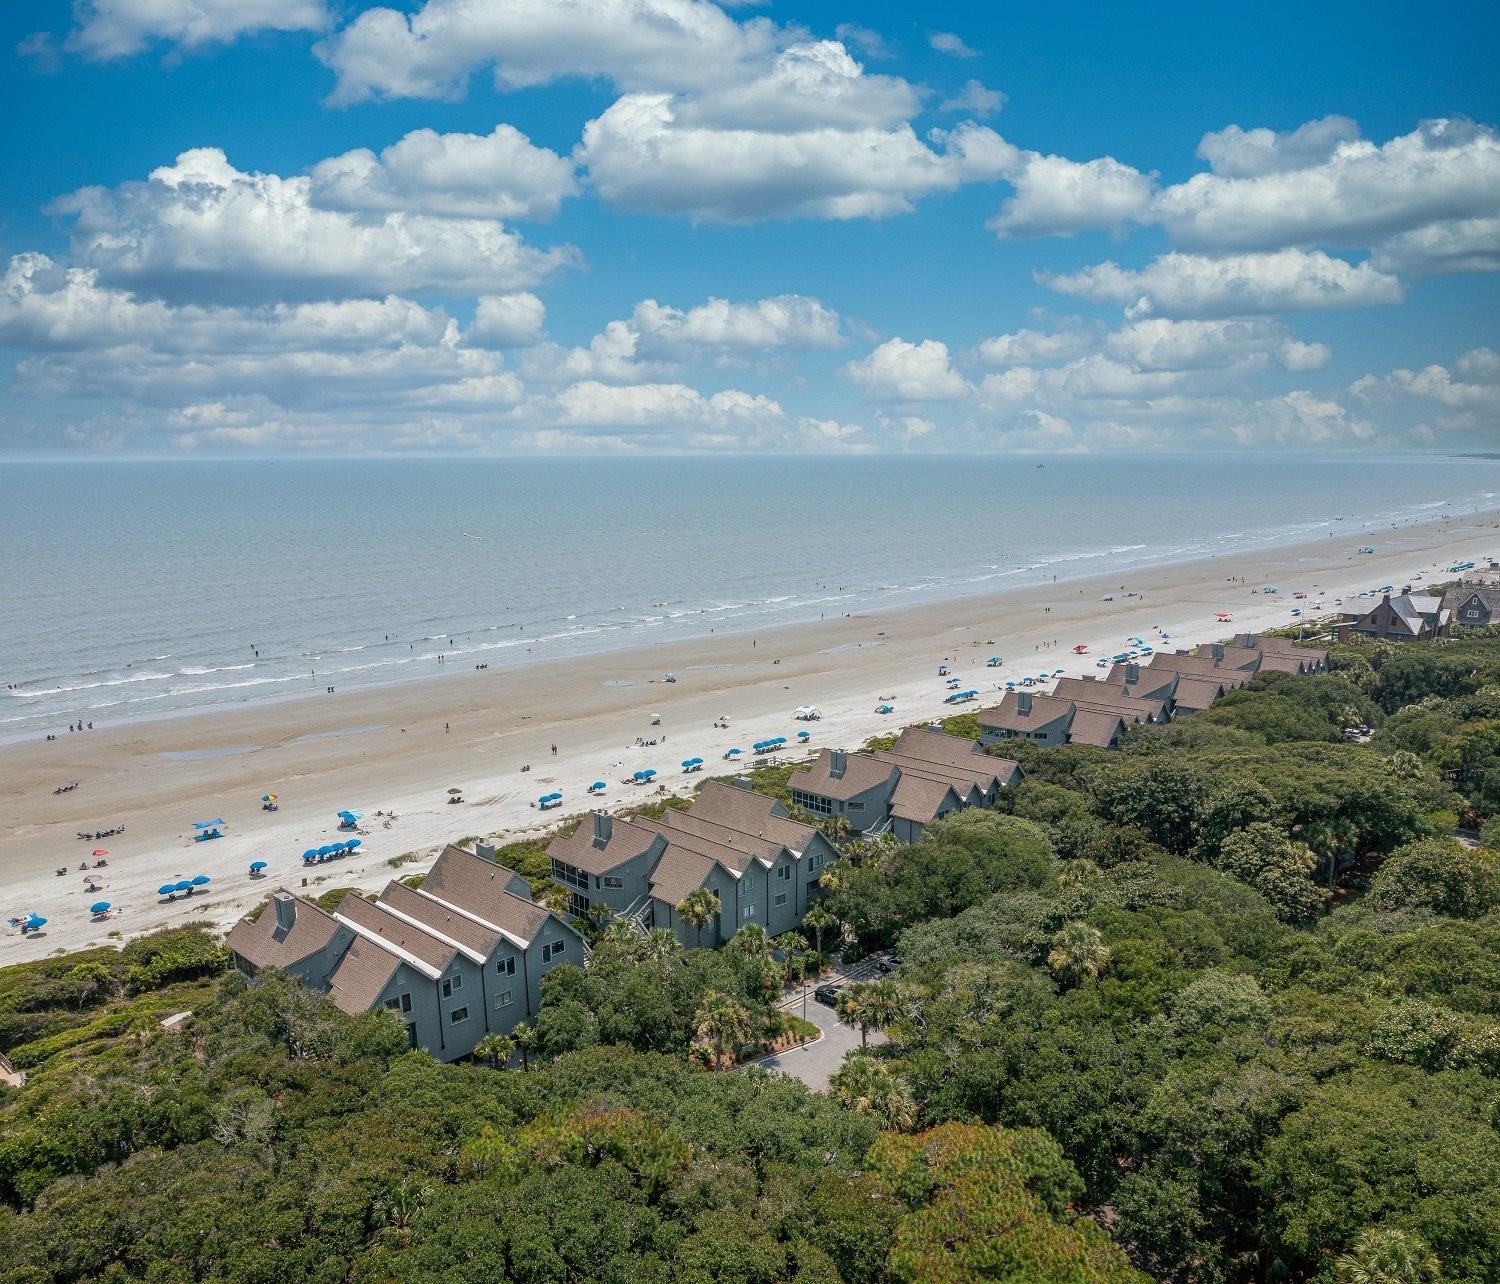 Aerial view of Mariner's Watch Beach in South Carolina